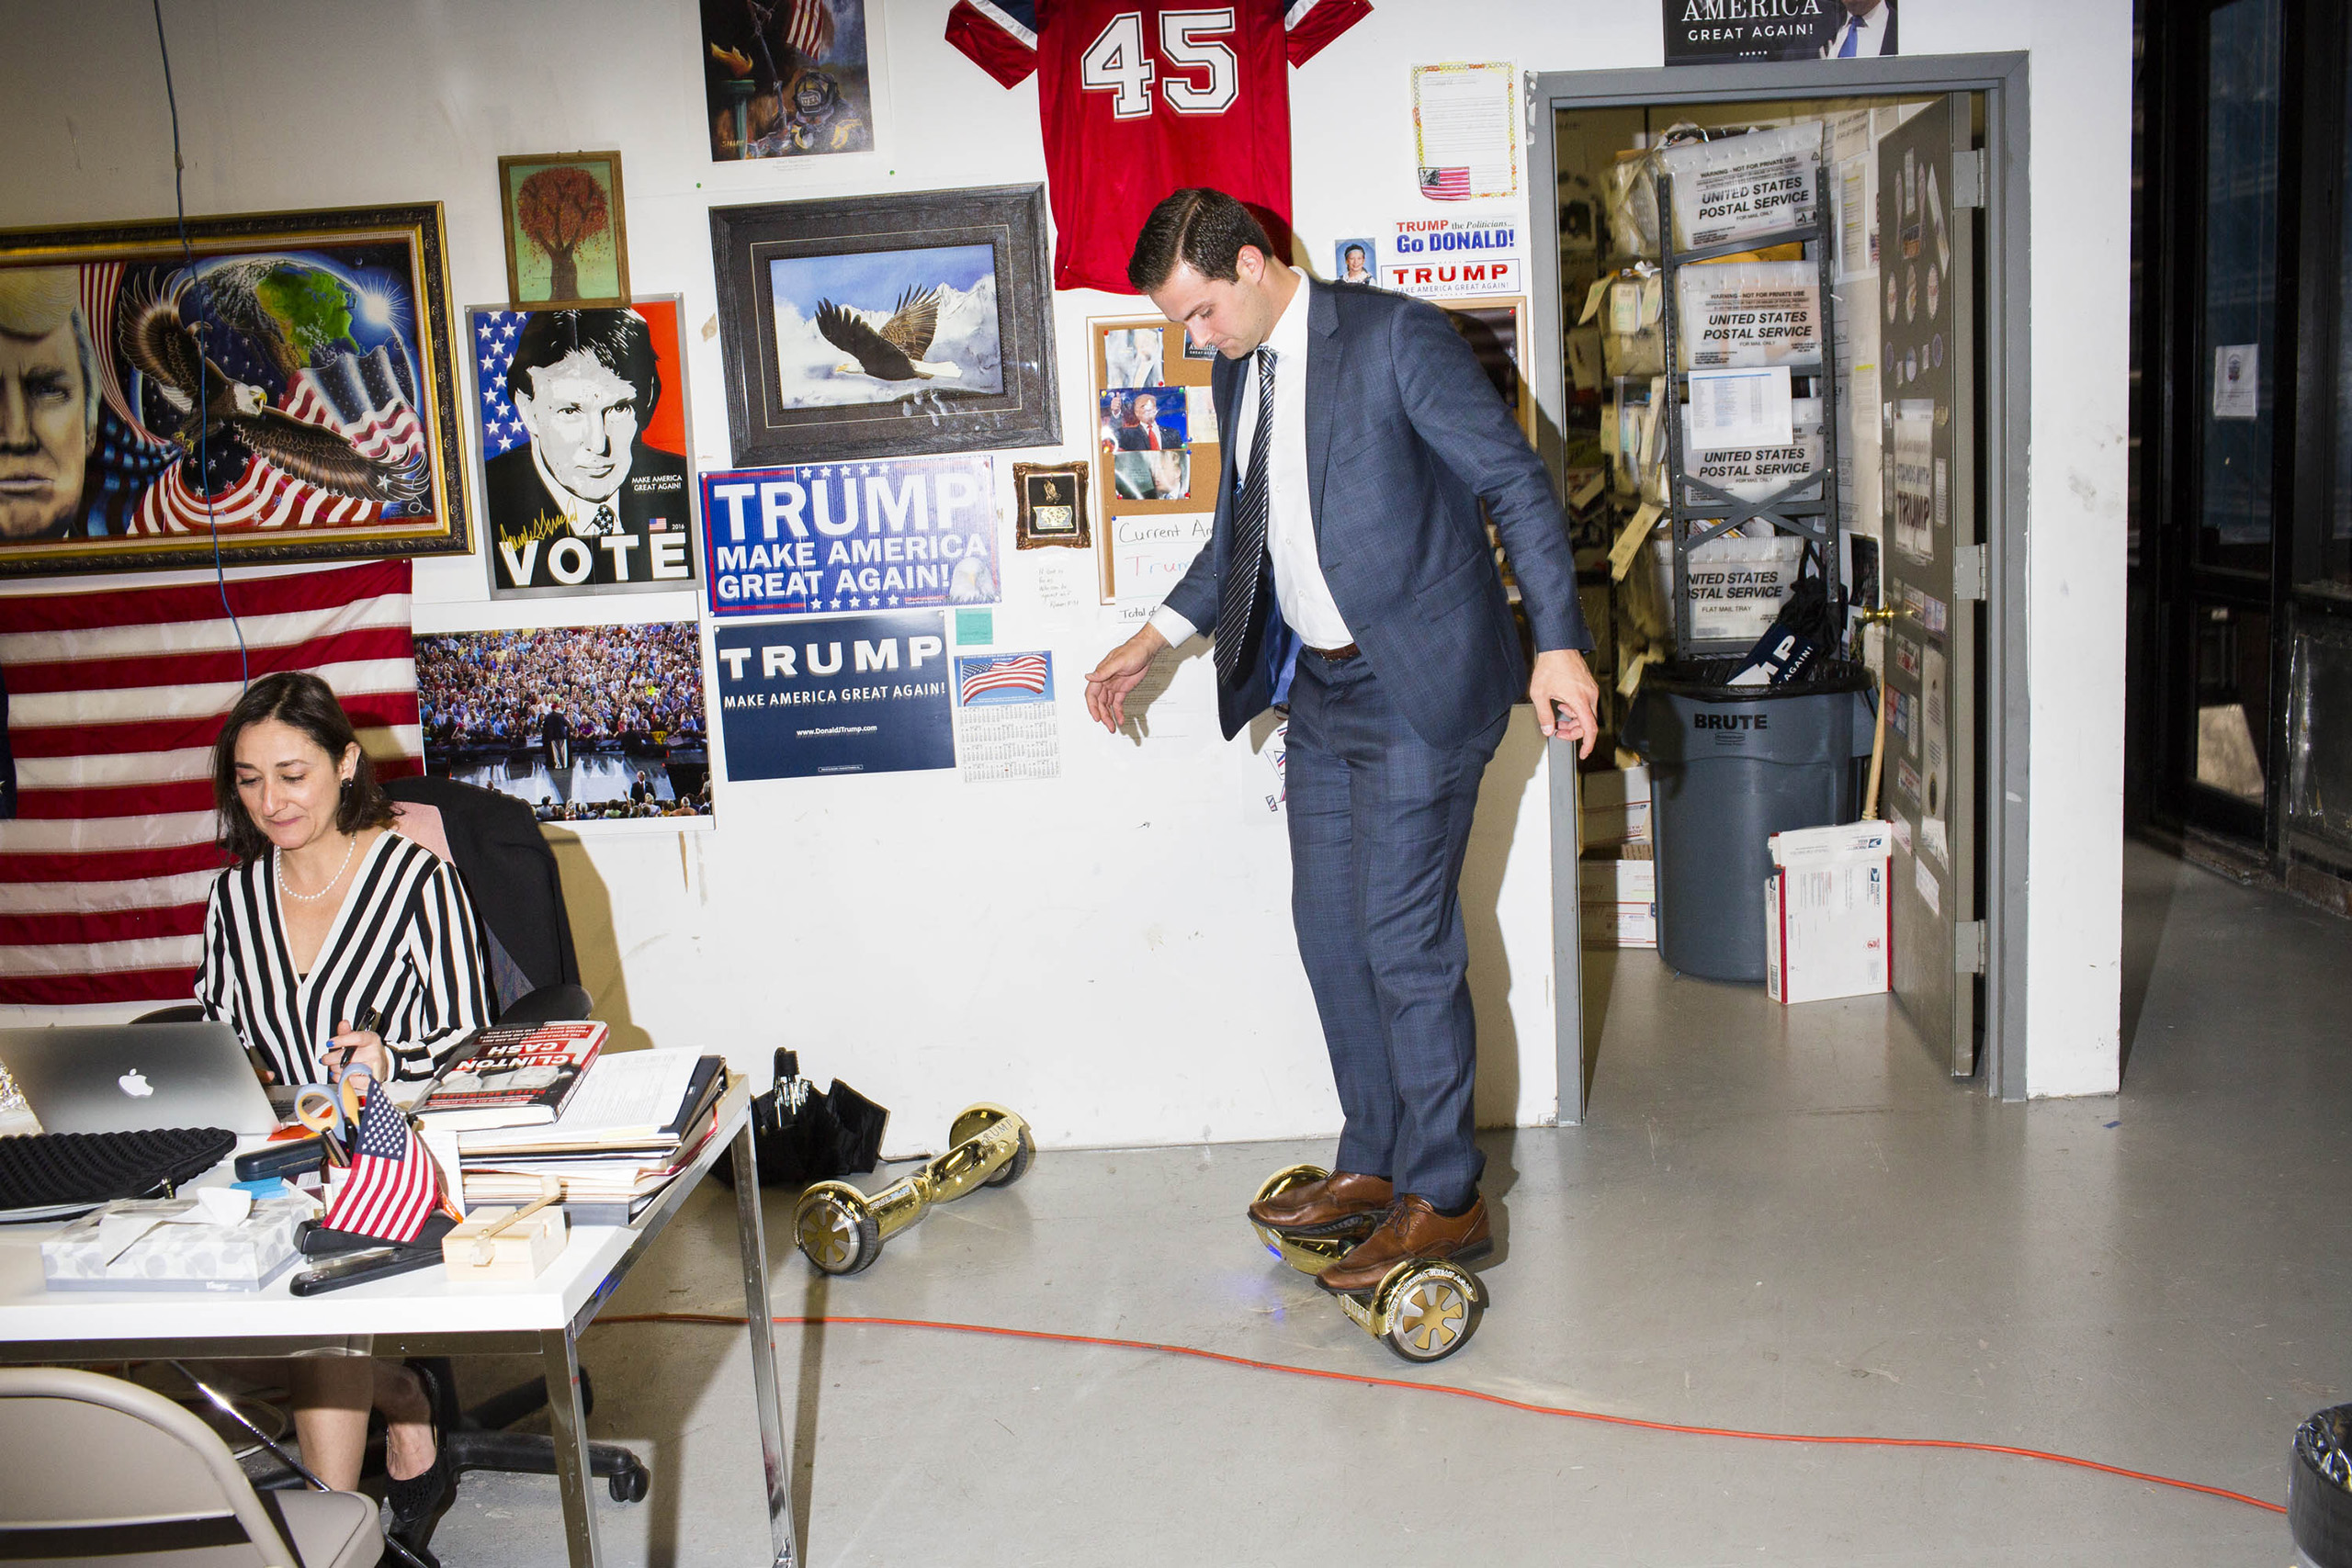 John McEntee, Trump's Campaign Trip Director, rides a hoverboard at the campaign headquarters of Donald Trump in New York City, on May 24, 2016.